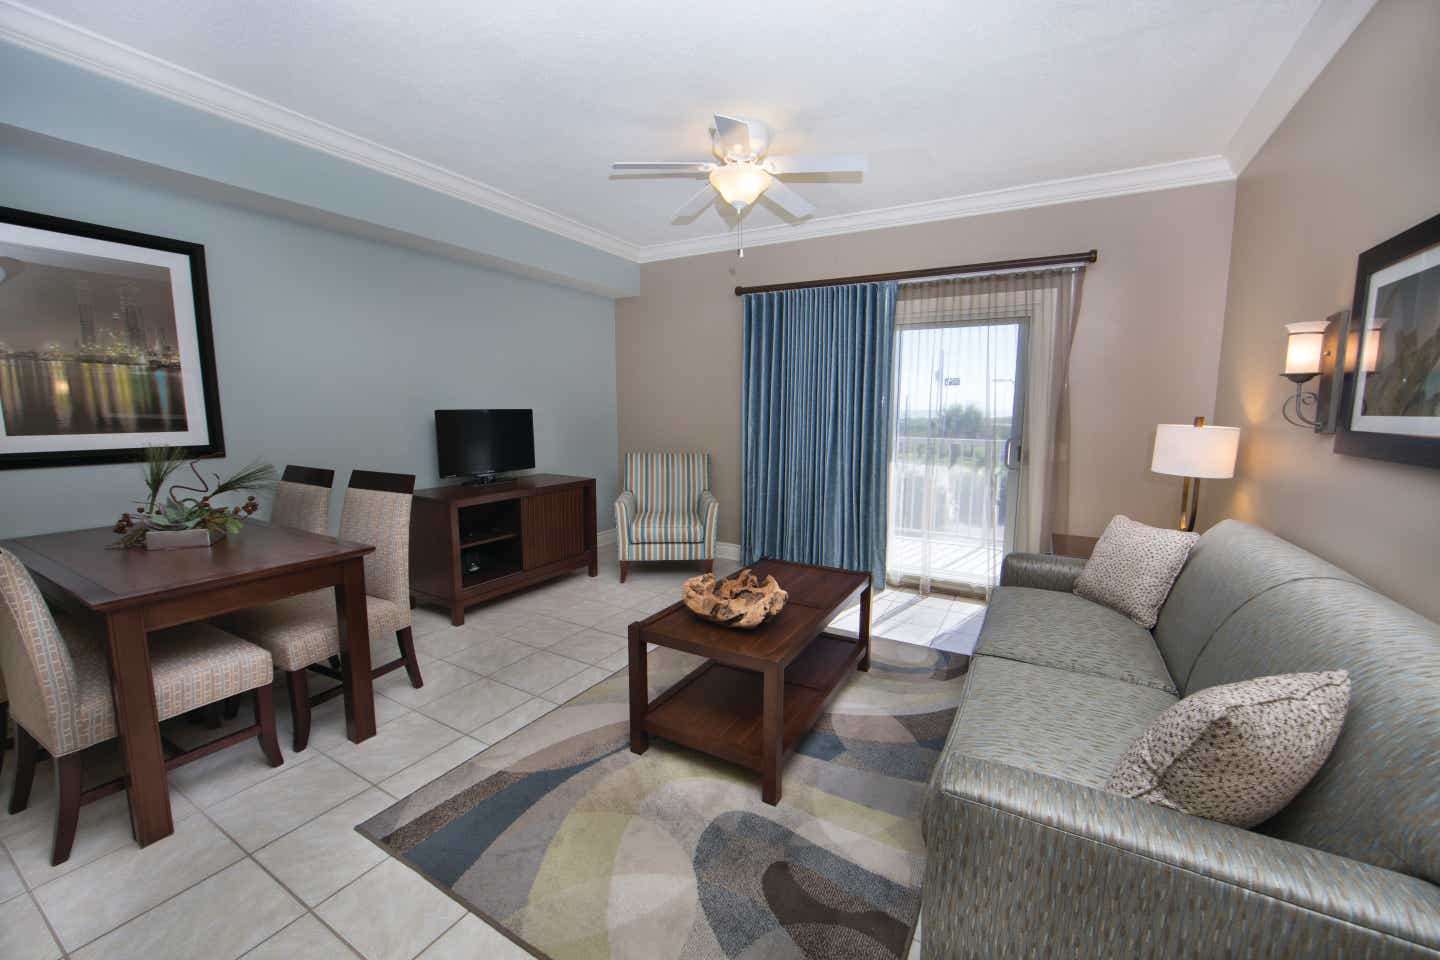 Living room with couch, flat screen TV, and access to balcony